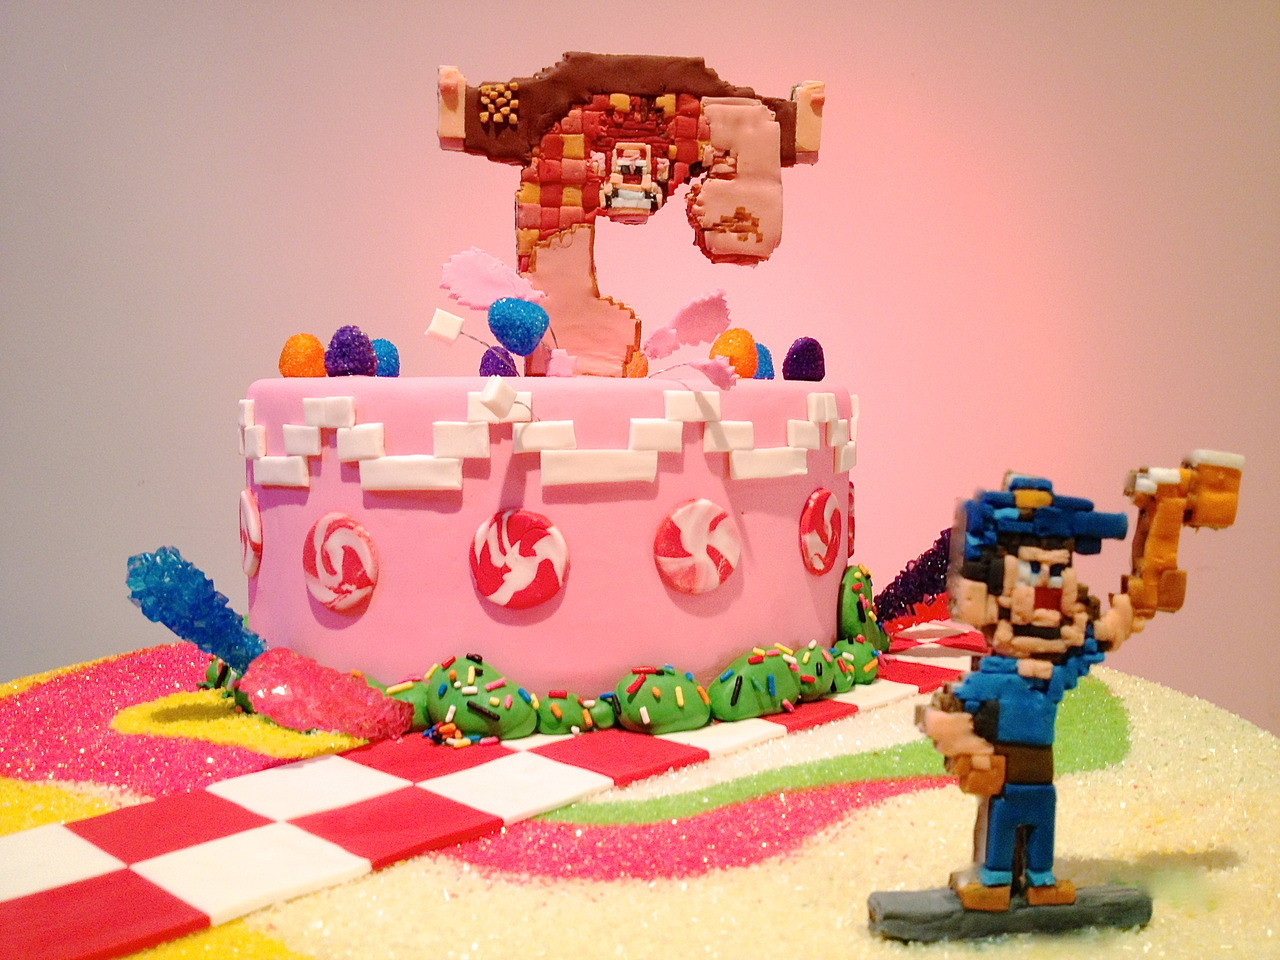 This 8 Bit Disney Wreck It Ralph Cake Is Sure To Give